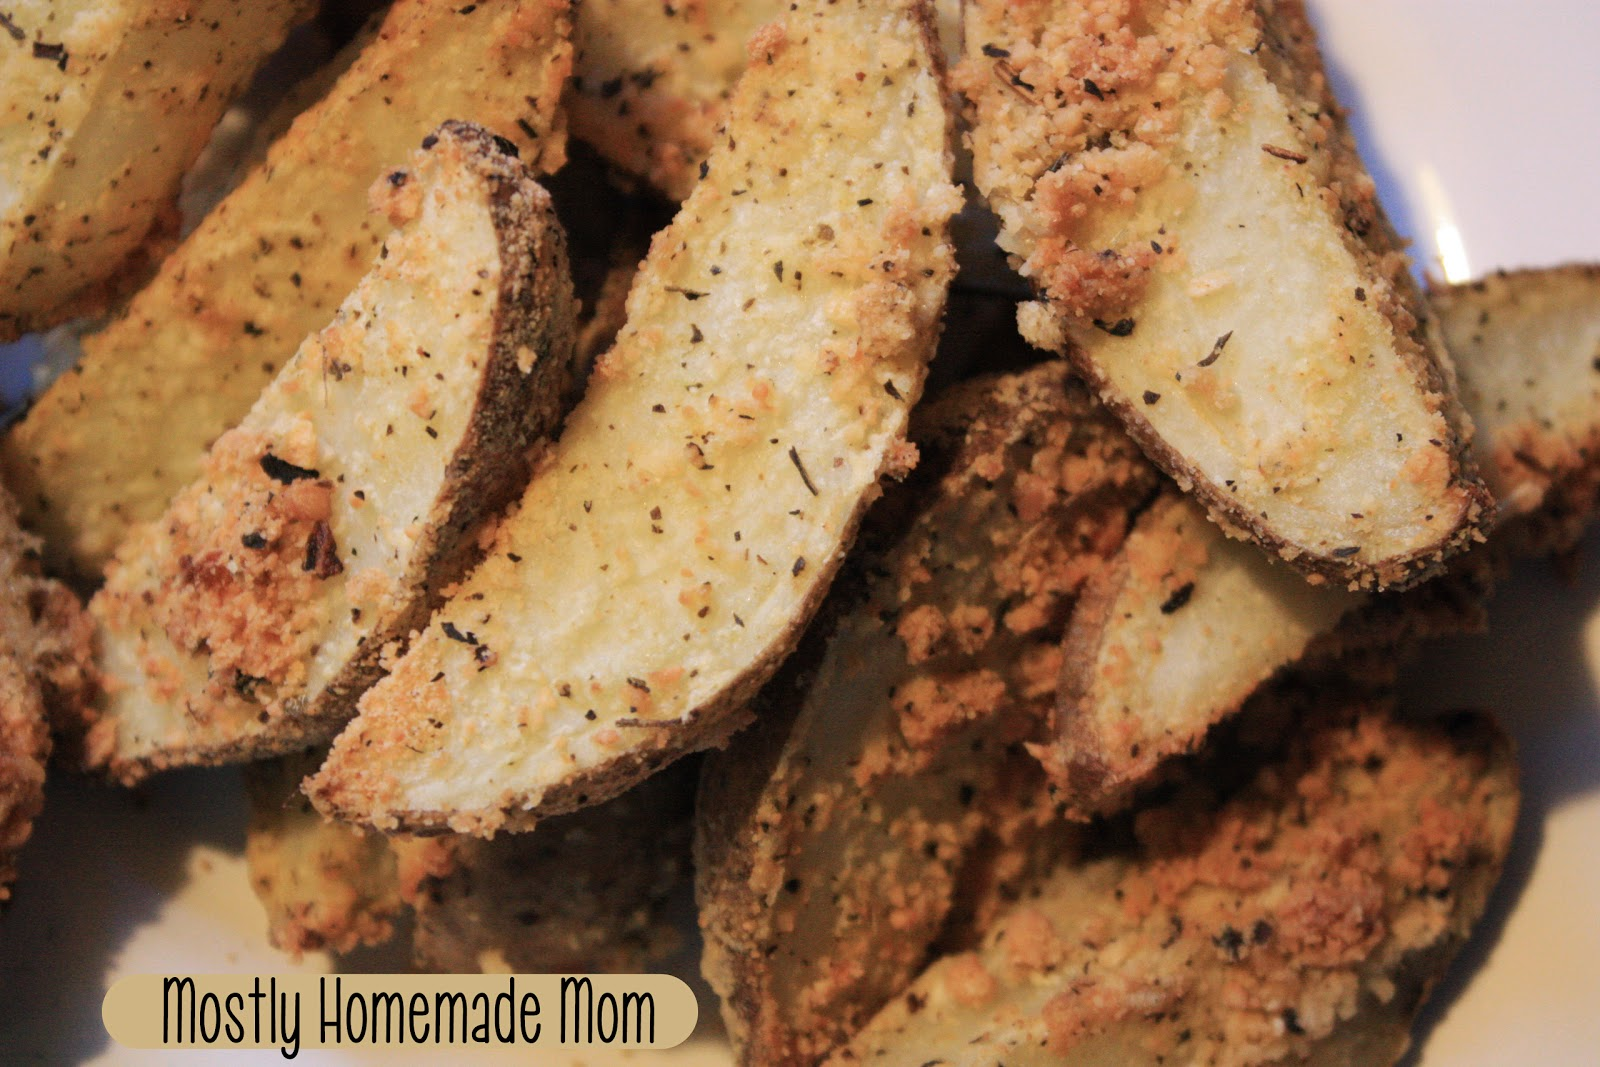 Mostly Homemade Mom: Italian Parmesan Potato Wedges